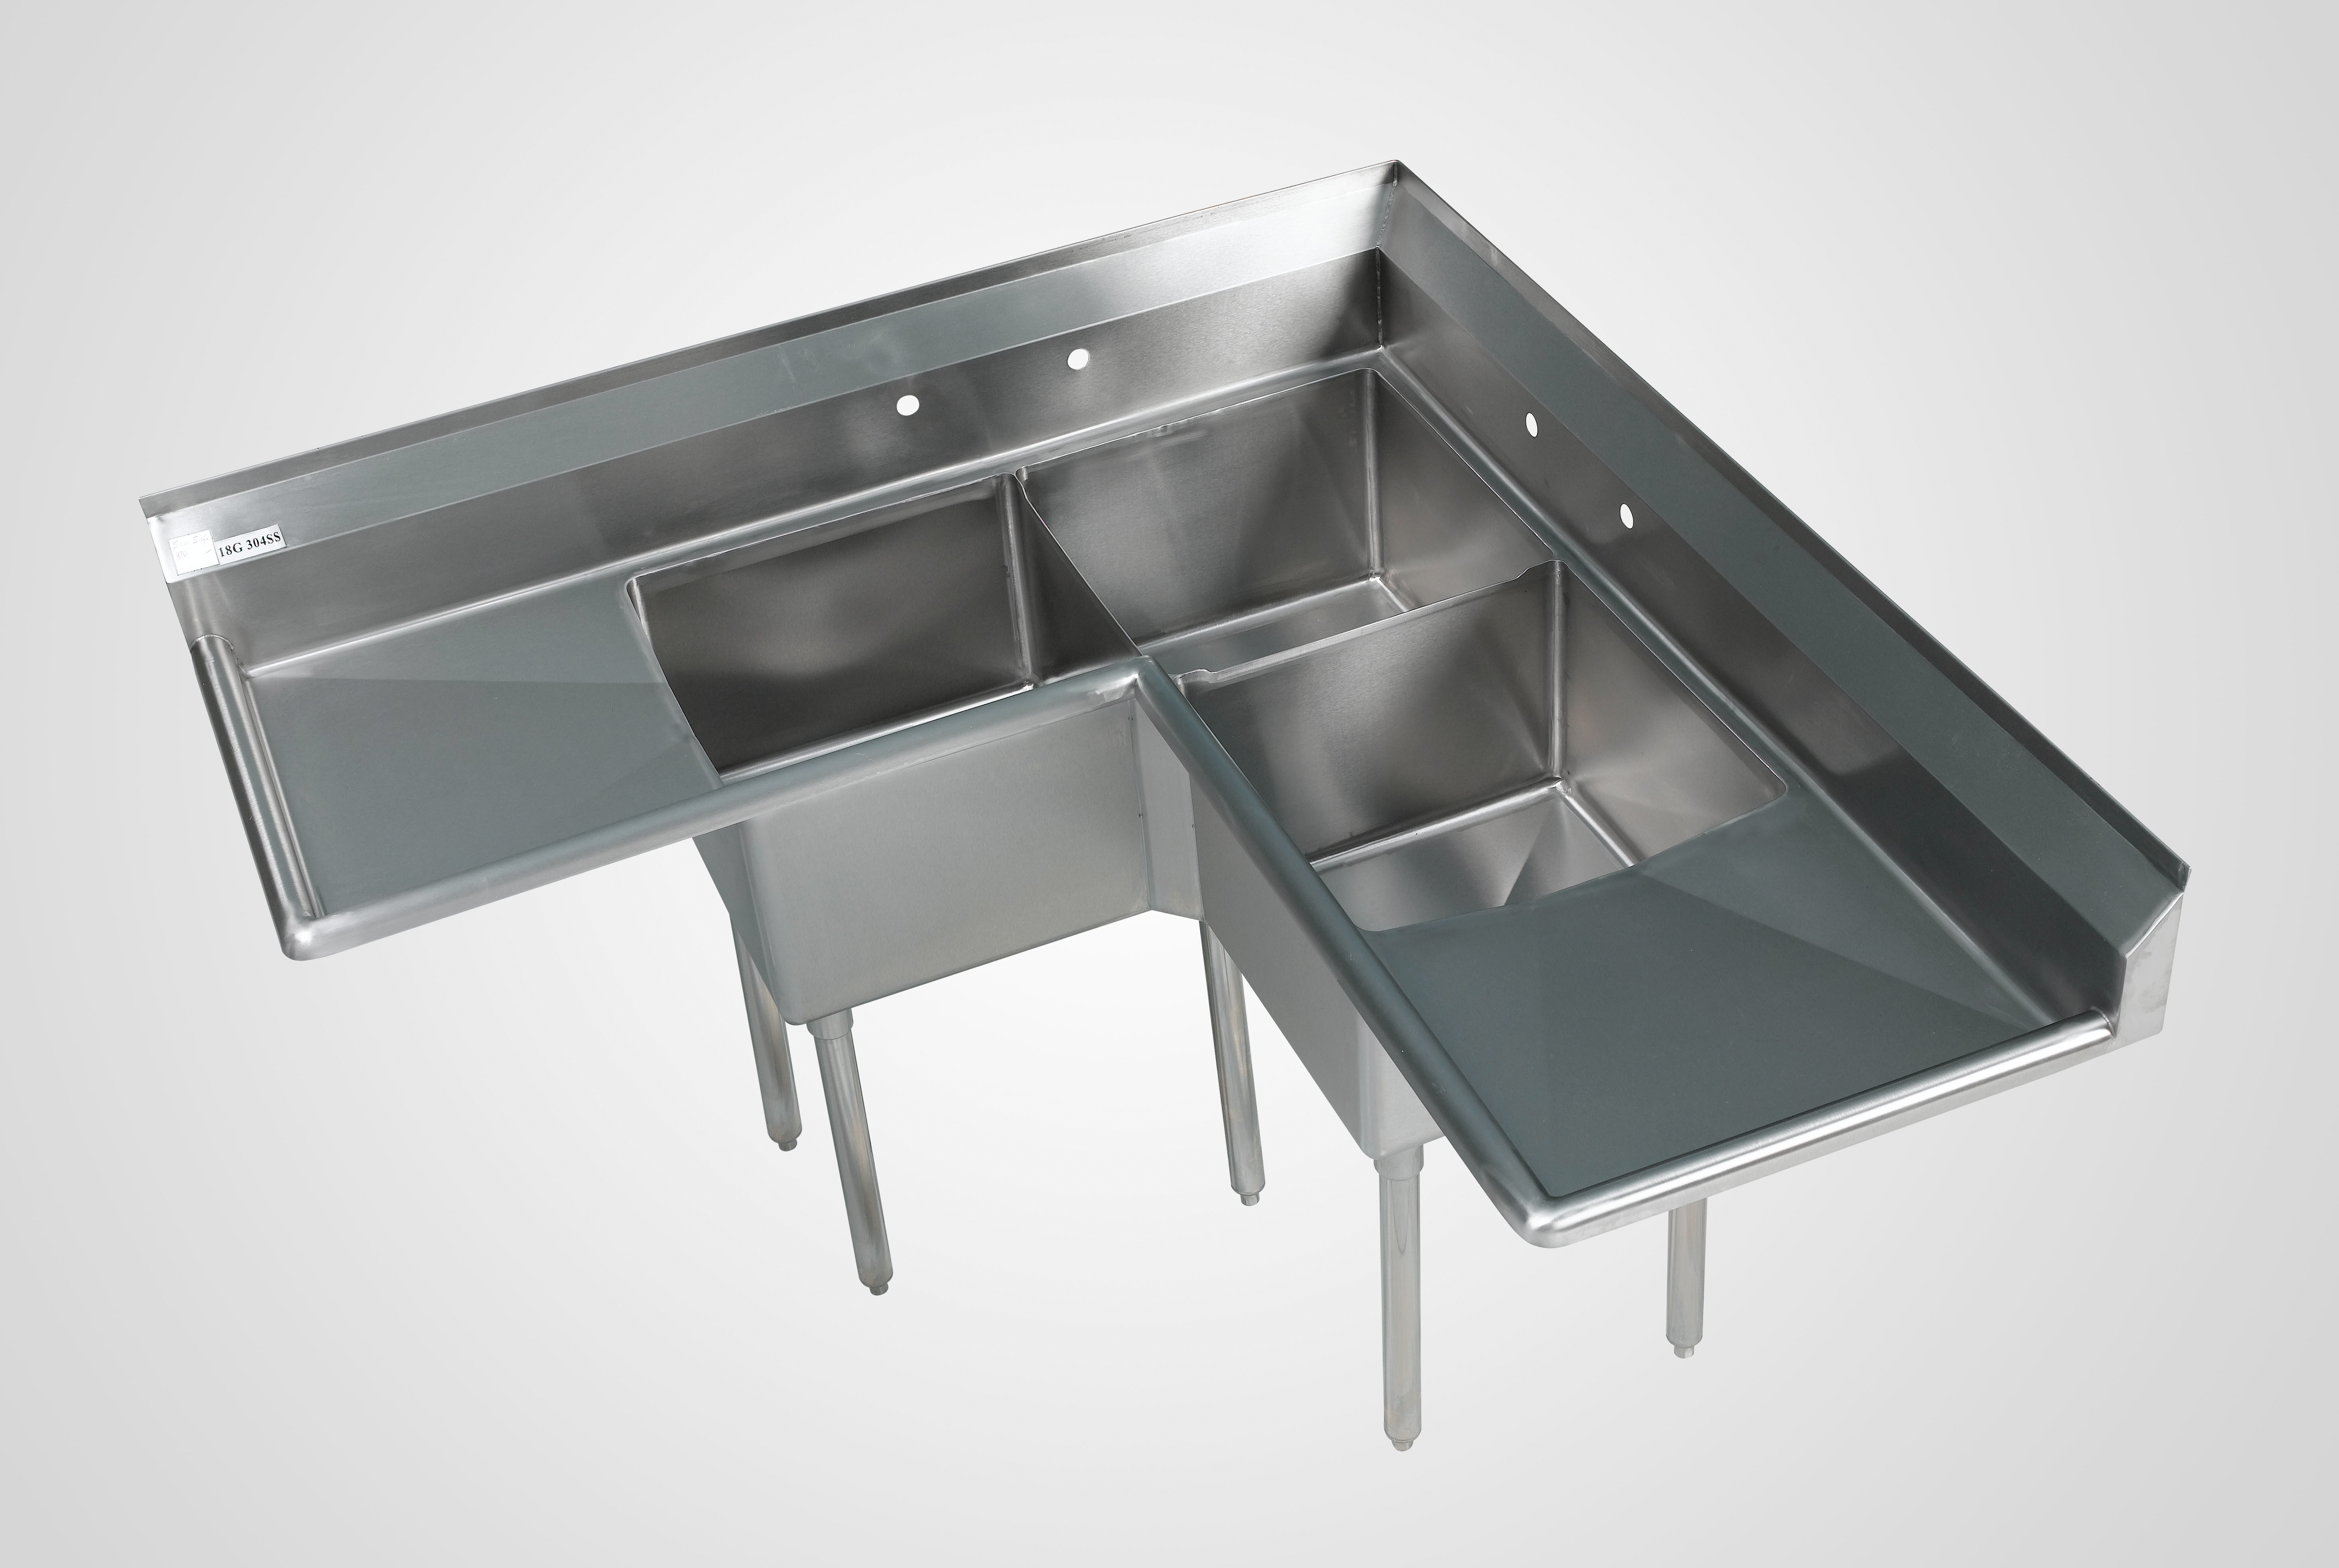 3 Compartment Stainless Sinks 3 Bowl Commercial Kitchen